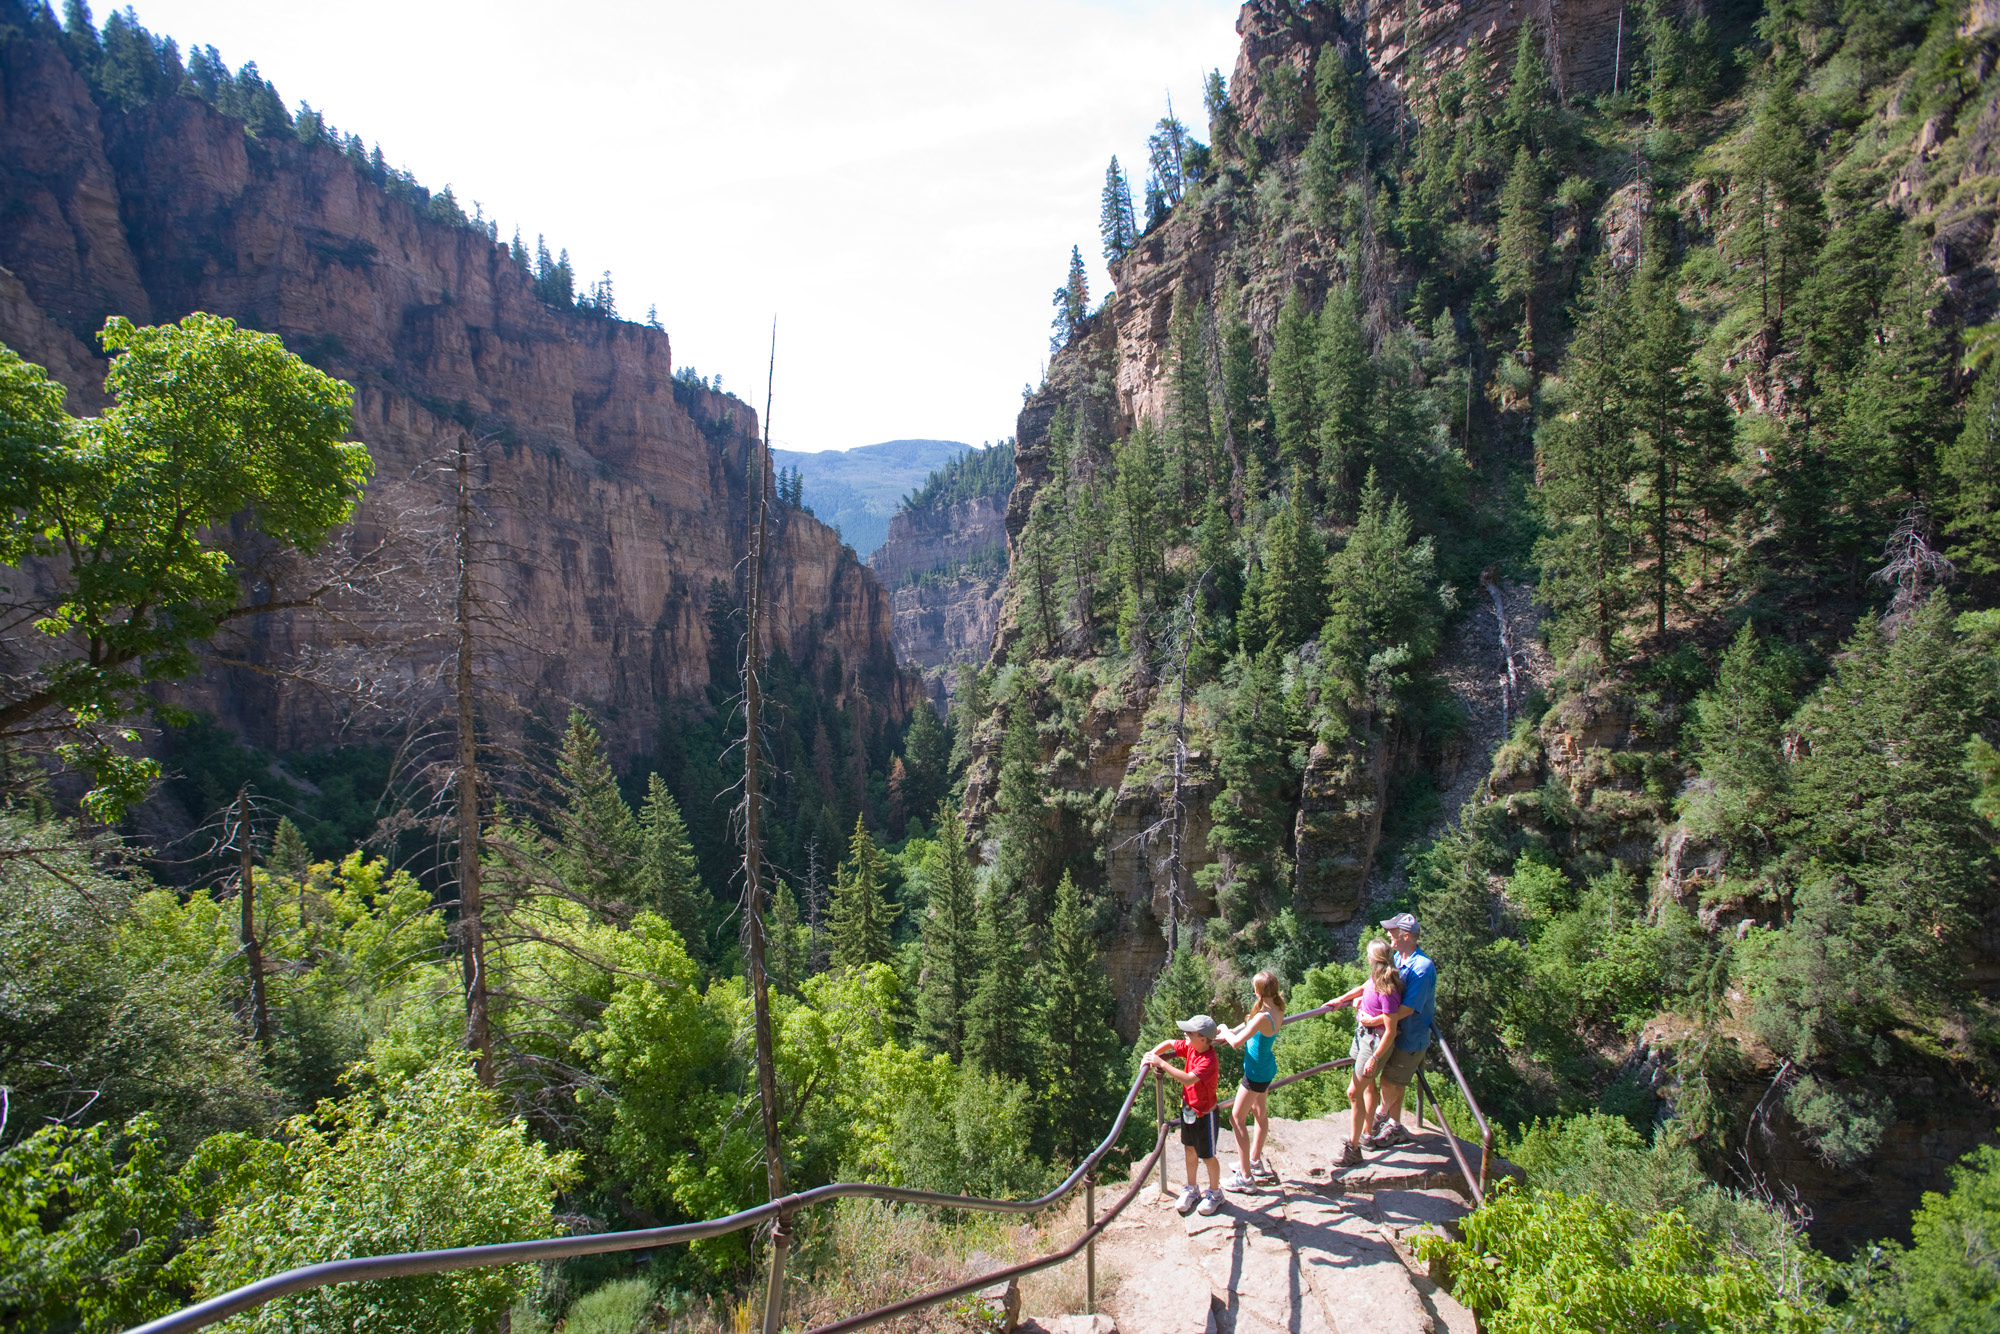 Summer-Hiking-in-Glenwood-Springs-Colorado-at Hanging Lake Trail